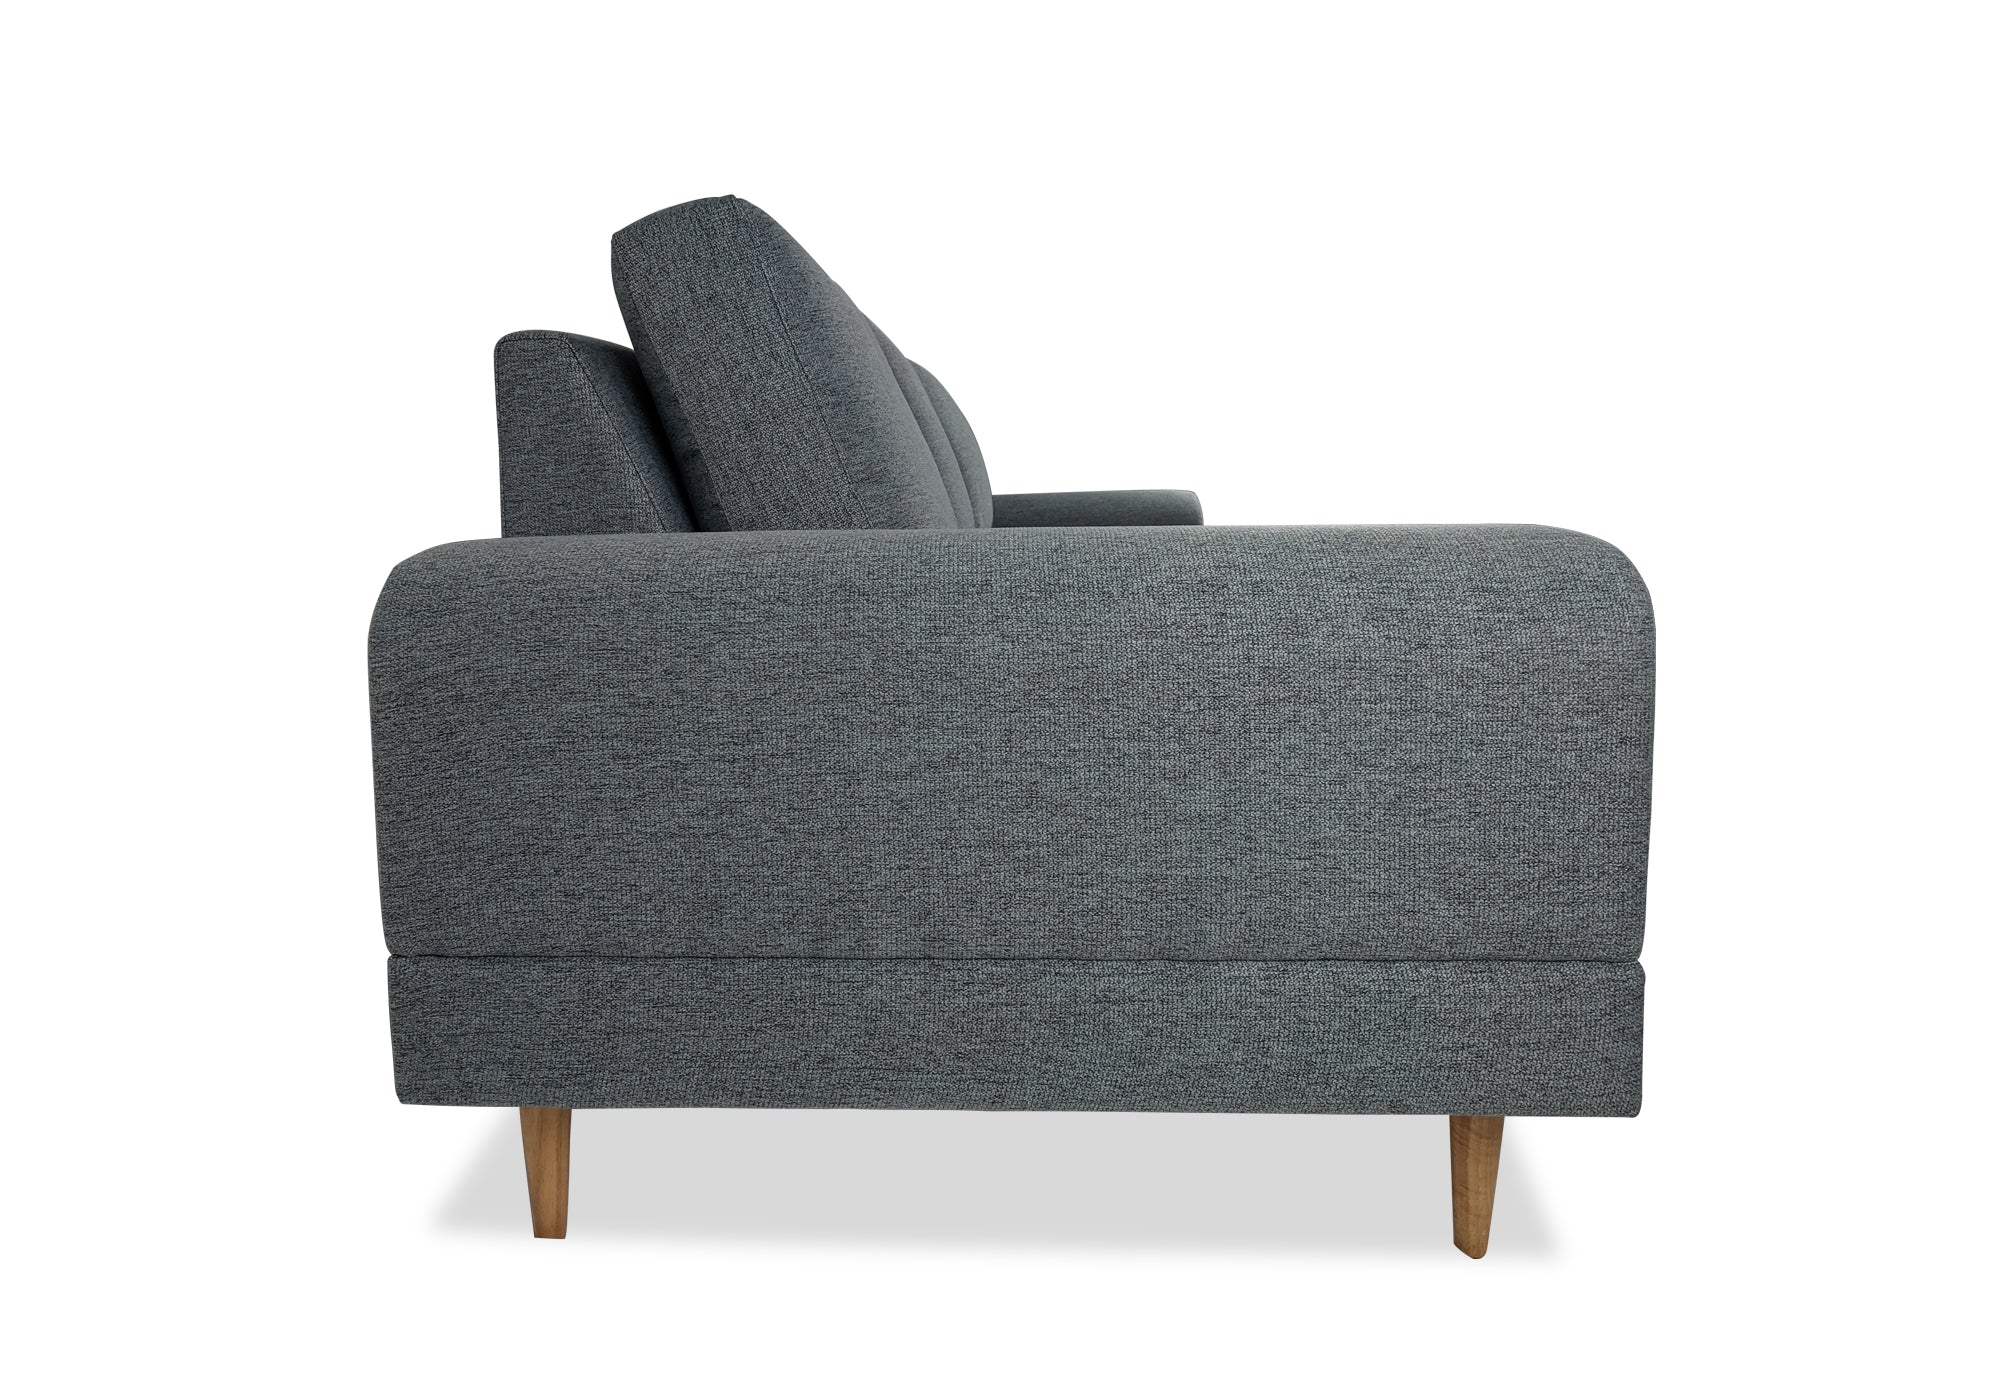 Groovy Cintra Chaise Lounge Handcrafted In Perth Domain Gallery Pabps2019 Chair Design Images Pabps2019Com